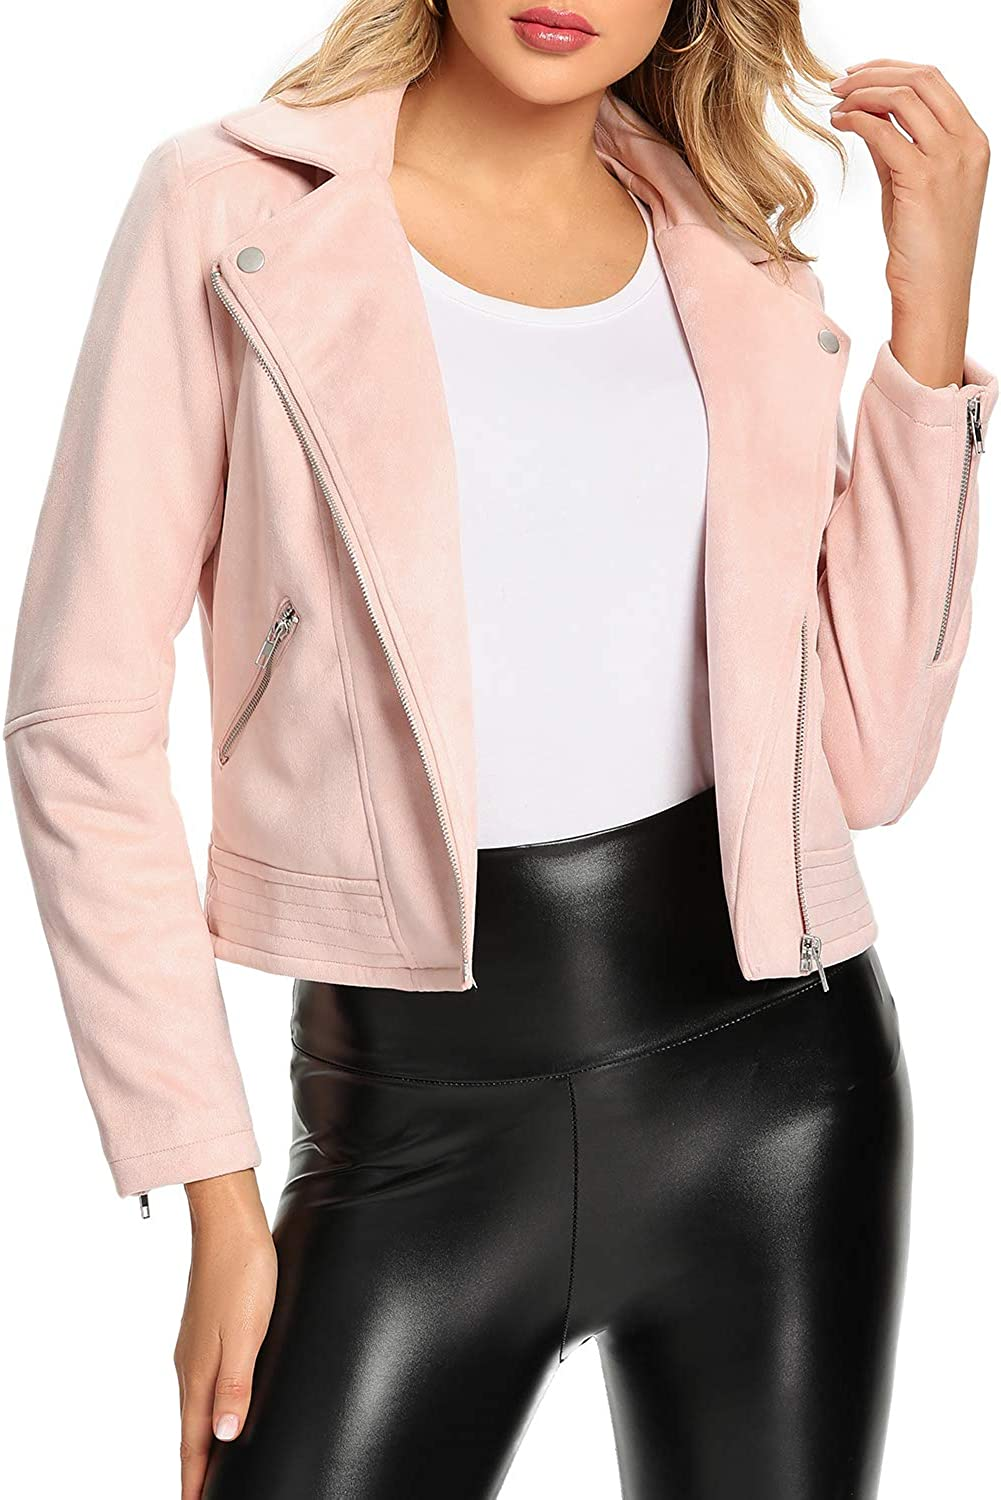 New Free Shipping S P Y M Women's Max 56% OFF Faux Suede Jackets Casual Sleeve Zipper Long Up